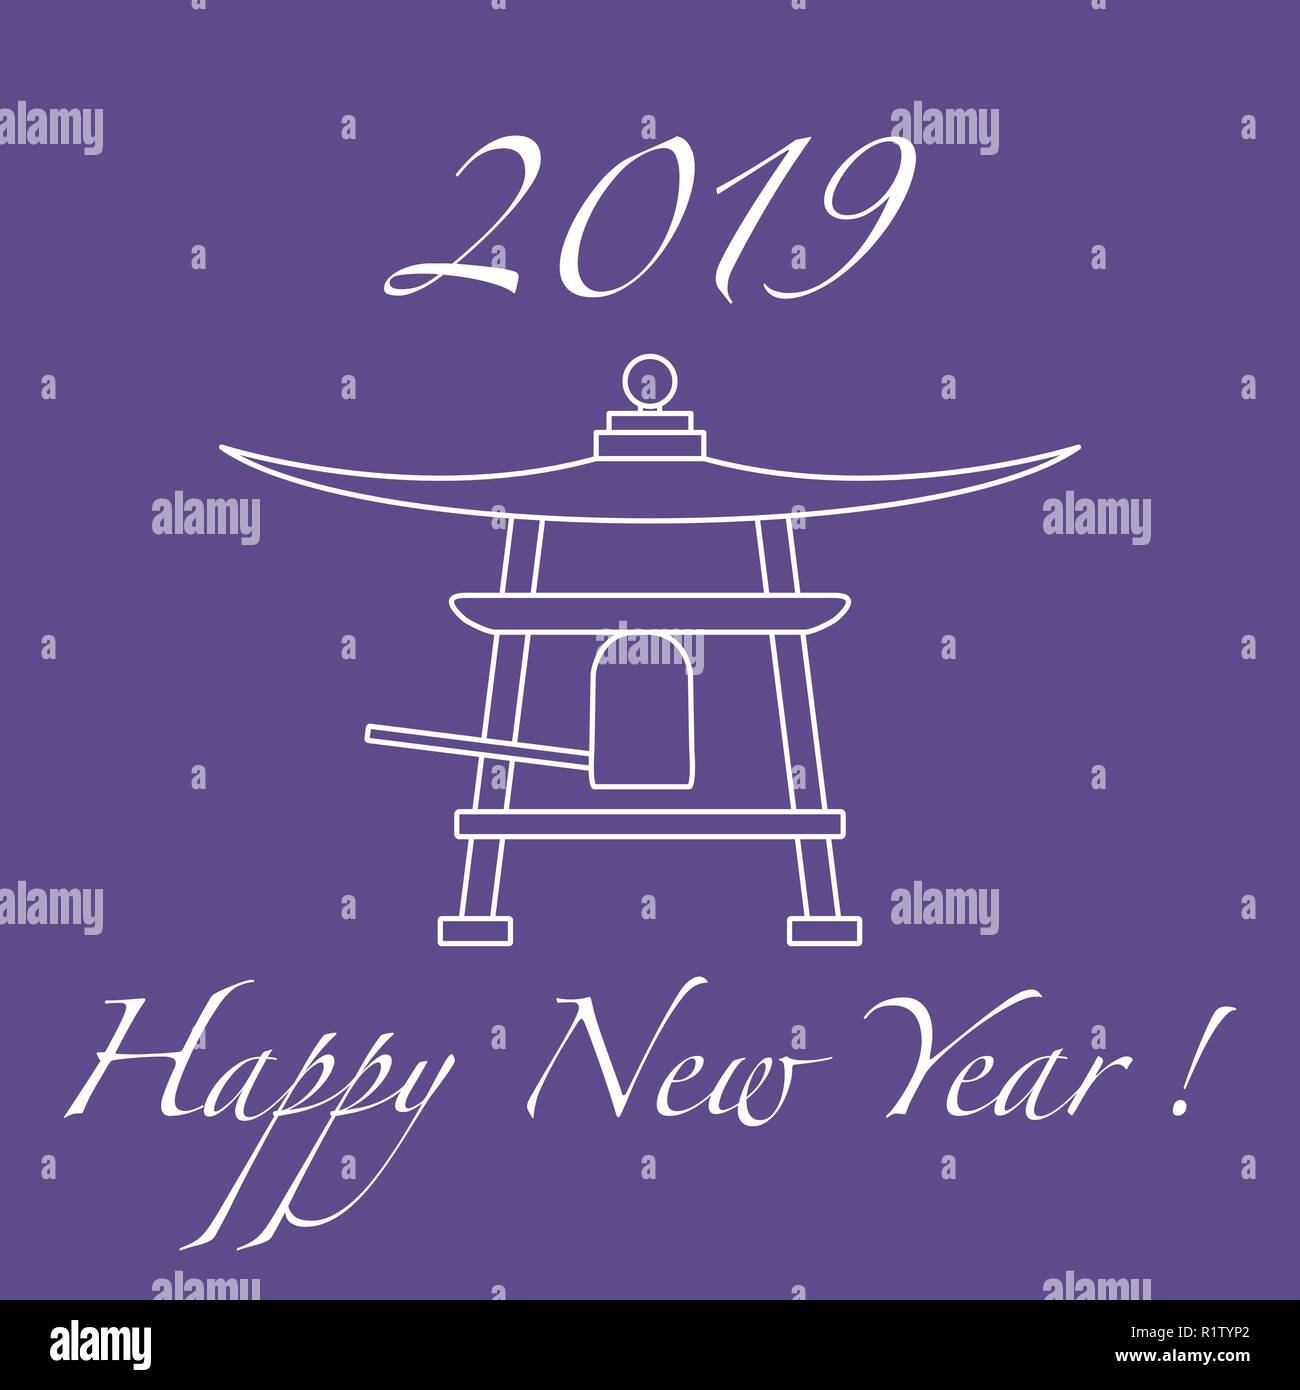 happy new year 2019 card new year symbol in japan bell festive traditions of different countries